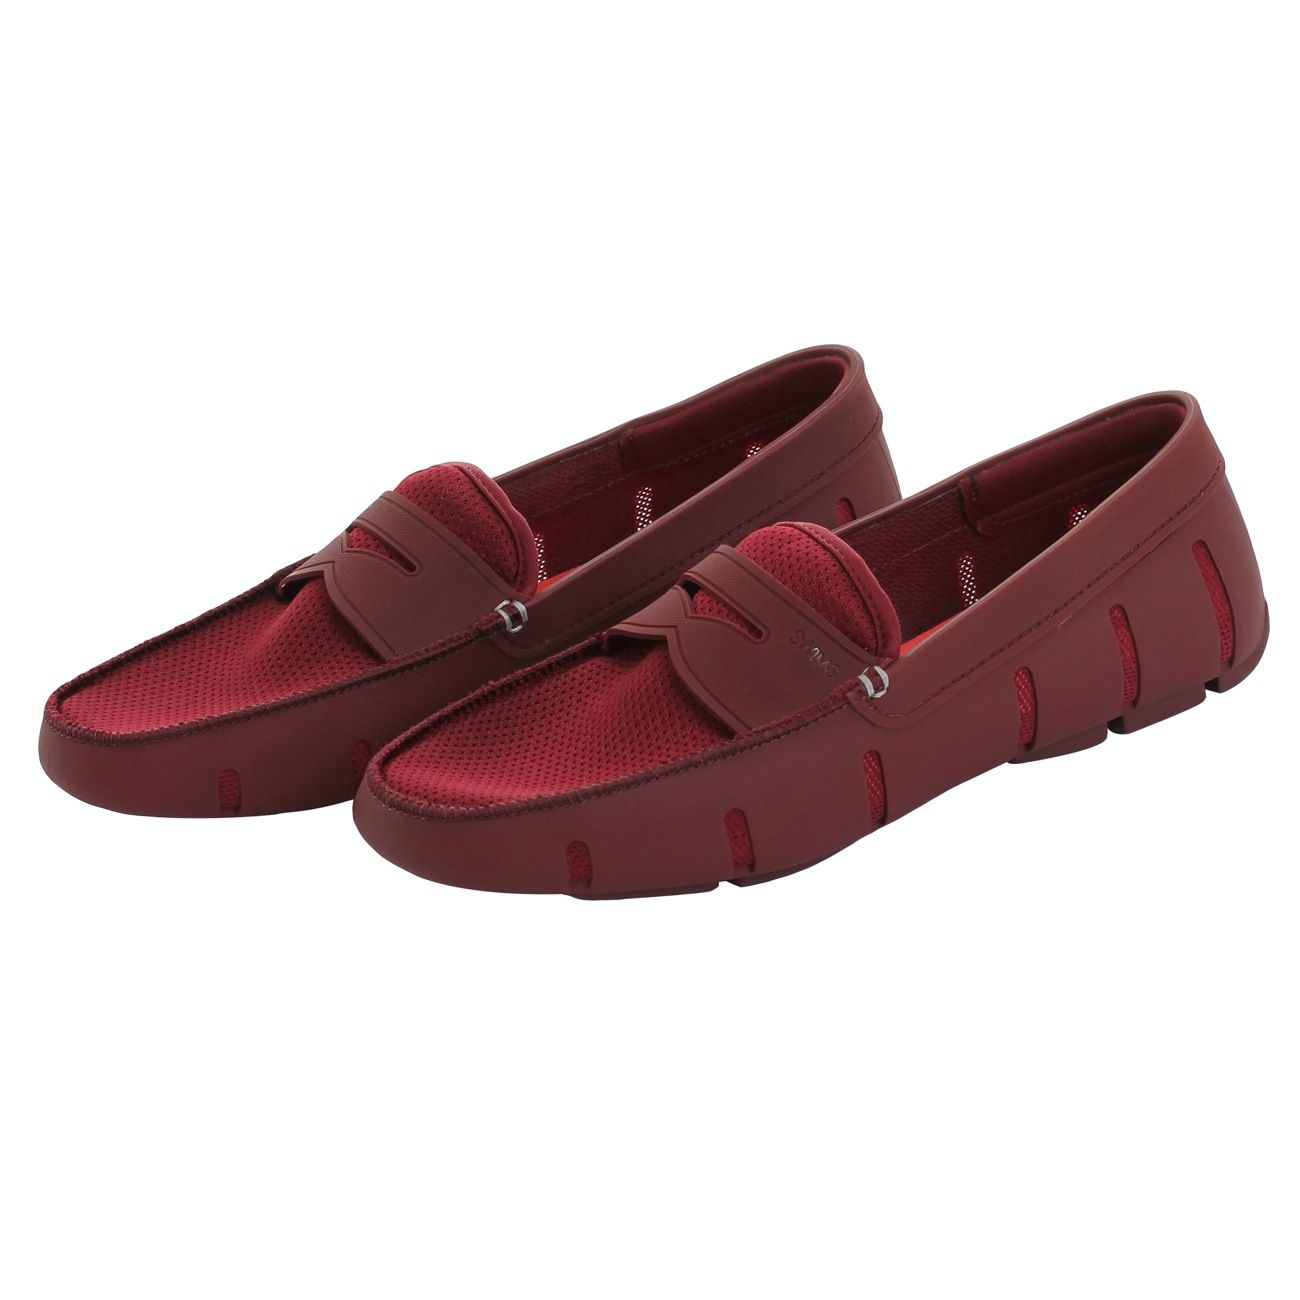 Mens Penny Loafer Driver Moccasins Swims Lowest Price Cheap Online Best Store To Get Sale Online Cheap 100% Original Discount Real Official For Sale PyYj58